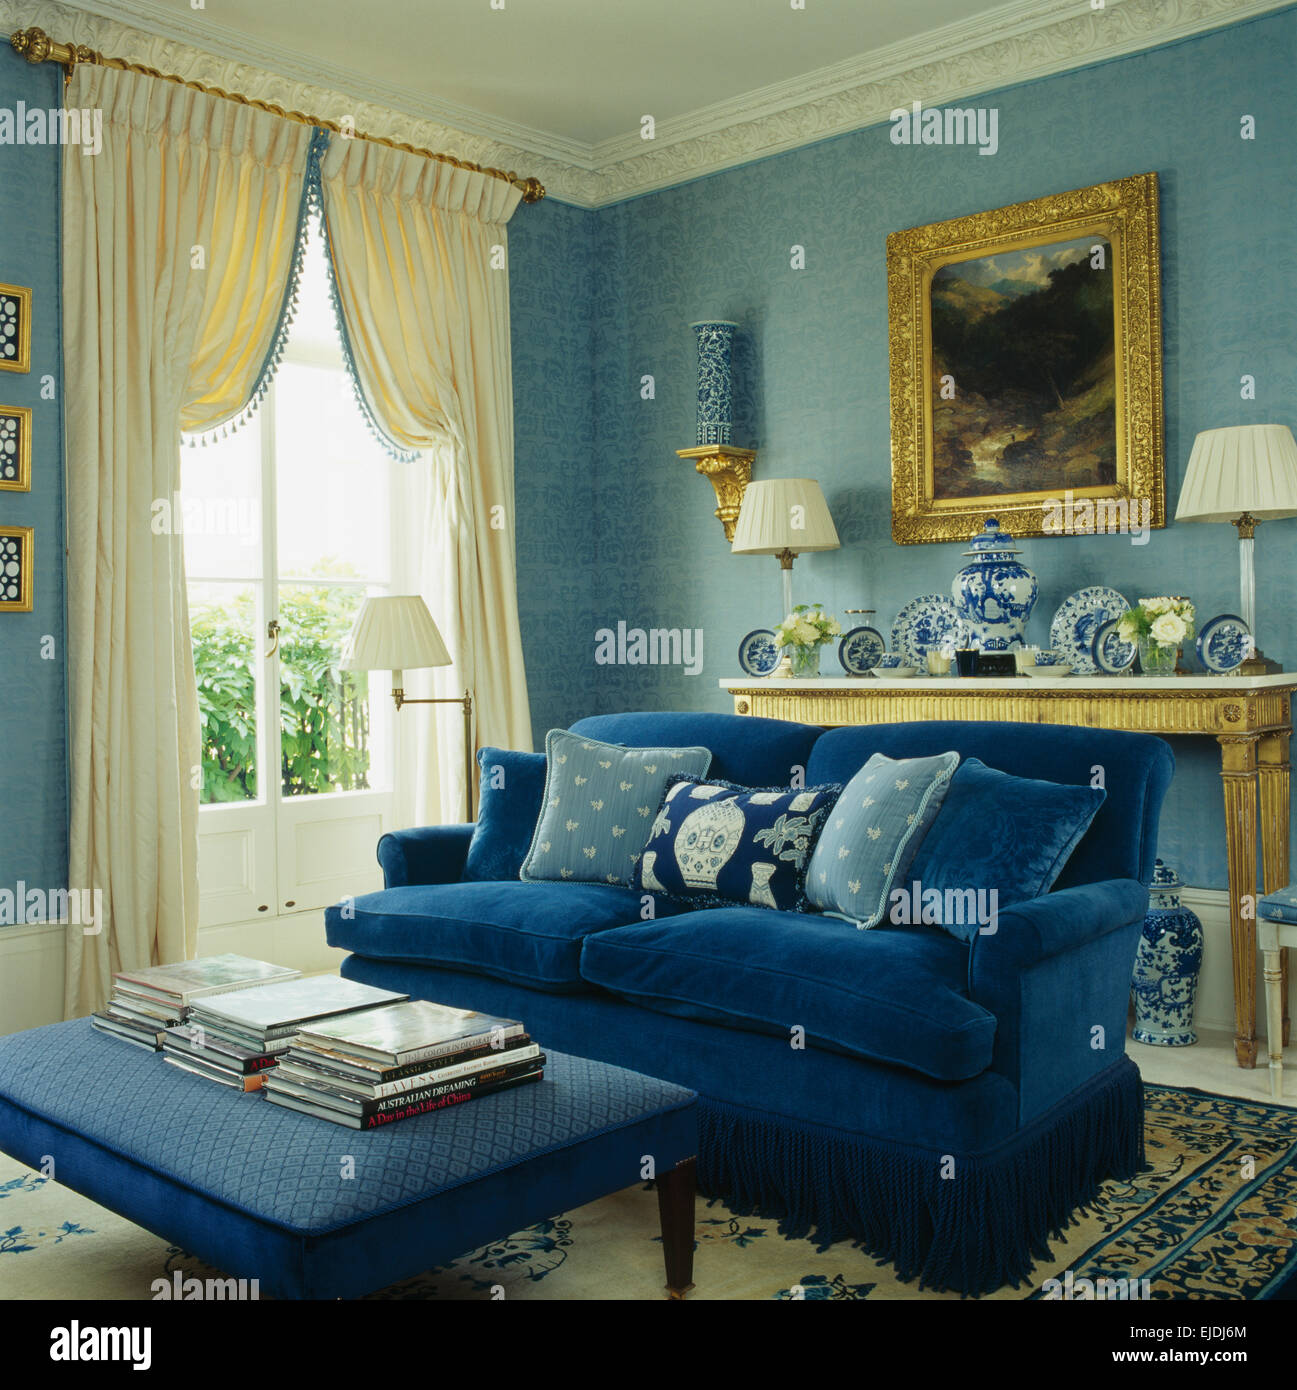 Stock Photo   Upholstered Stool And Deep Blue Sofa With Toning Blue  Cushions In Blue Living Room With Cream Drapes On French Windows